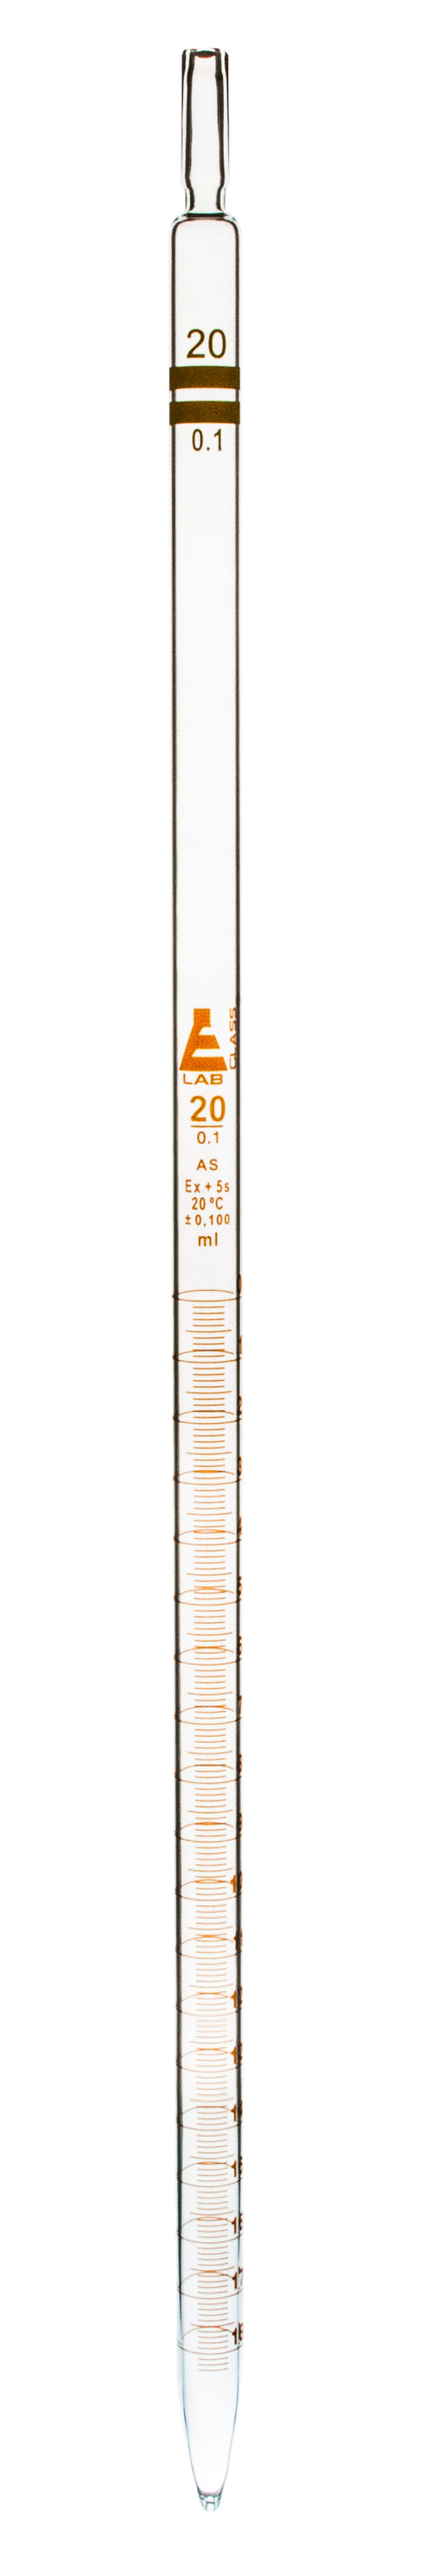 Pipette, 20ml - Class AS, Tolerance ±0.100 - Amber Graduation - Color Code, Yellow - Borosilicate Glass - Eisco Labs